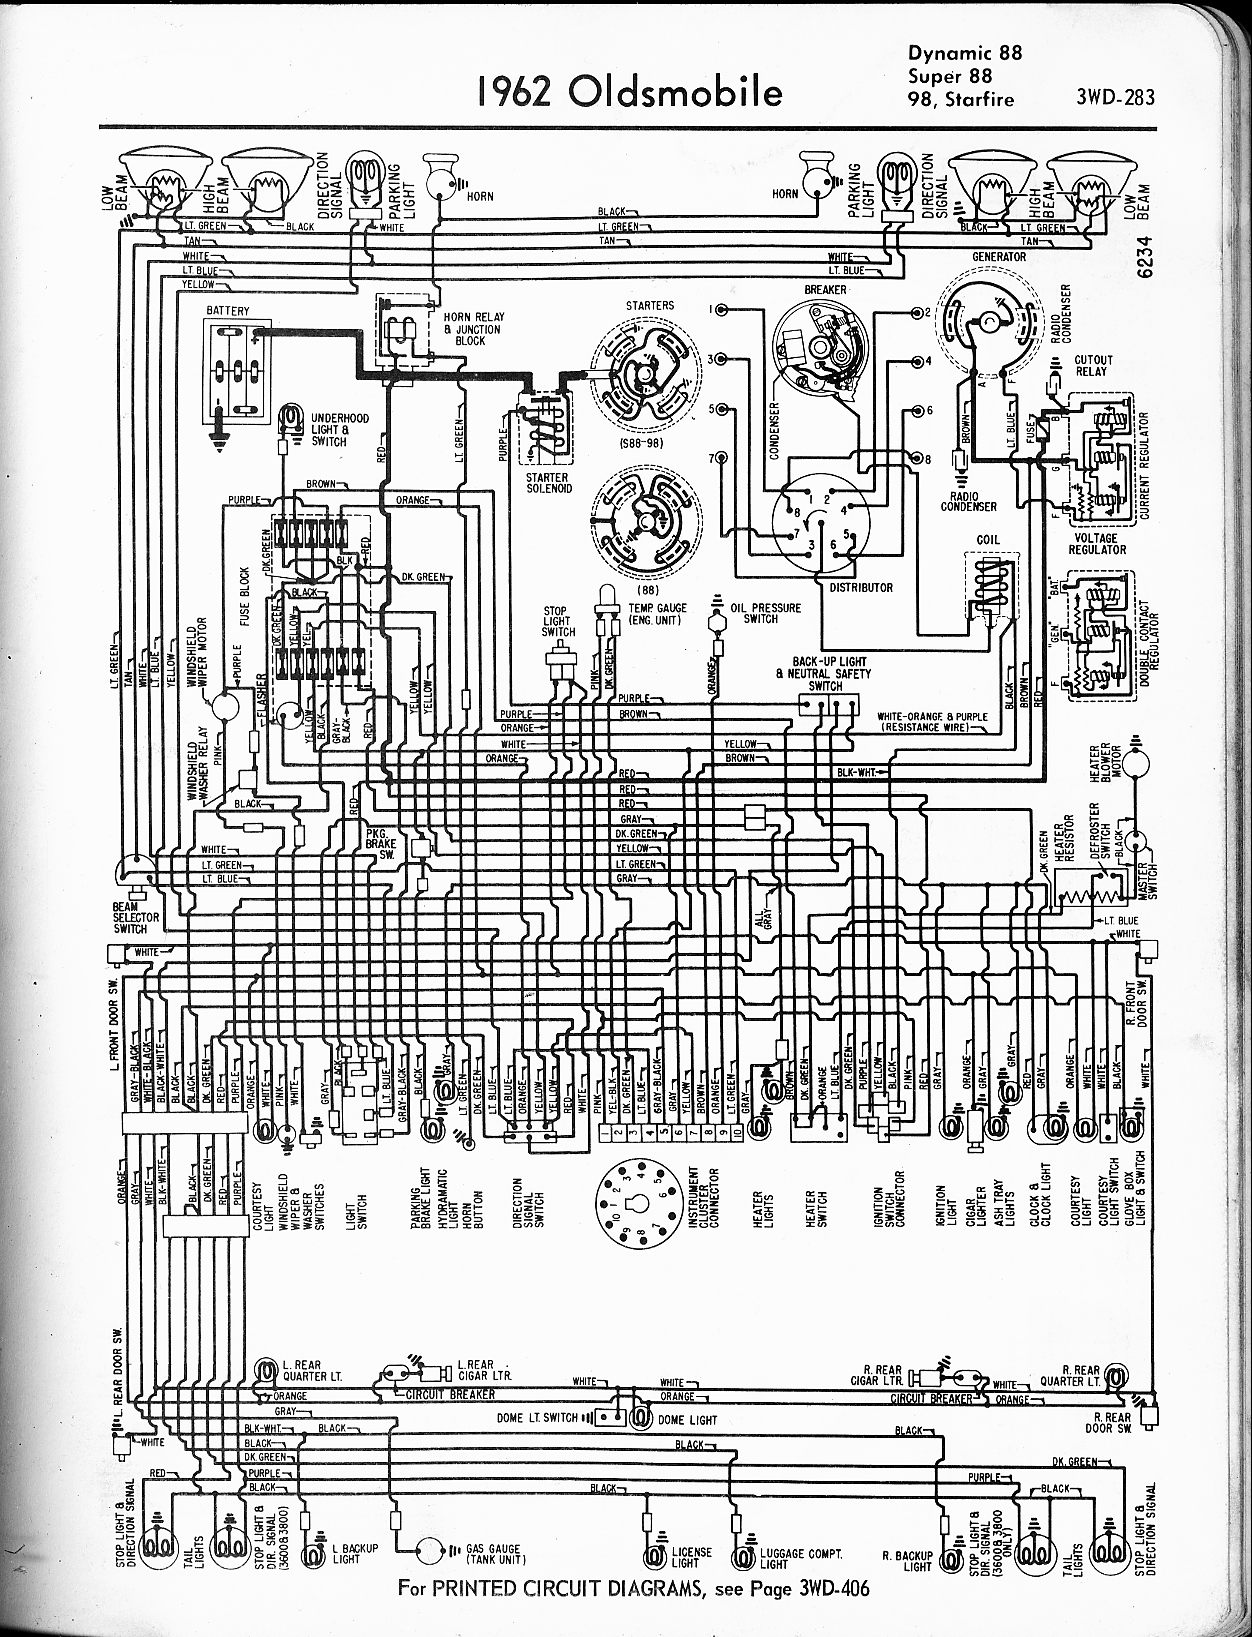 MWire5765 283 oldsmobile wiring diagrams the old car manual project Basic Turn Signal Wiring Diagram at edmiracle.co